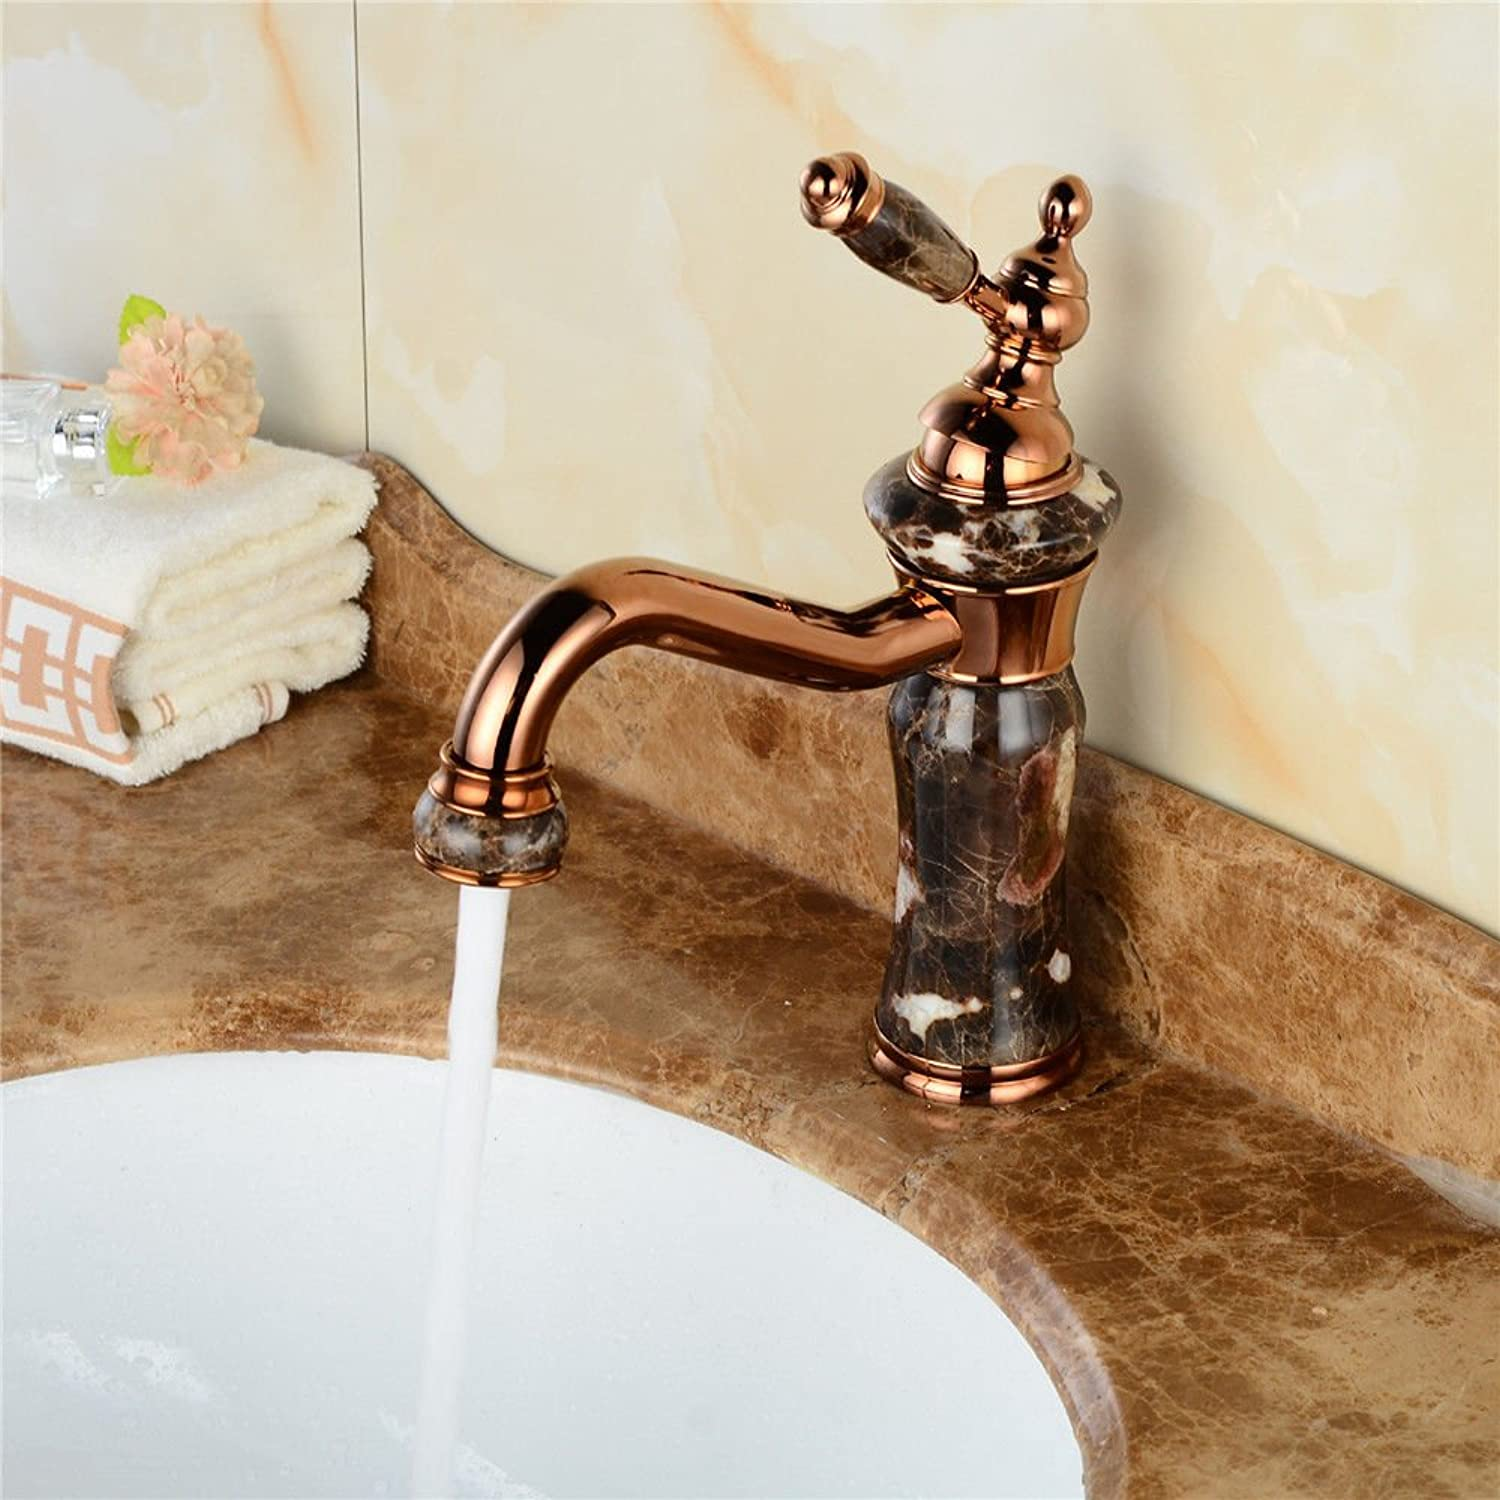 MulFaucet Faucet Water tap Taps Swivel Hoses gold European Retro All Copper Black hot and Cold Water Basin Bathroom Sink